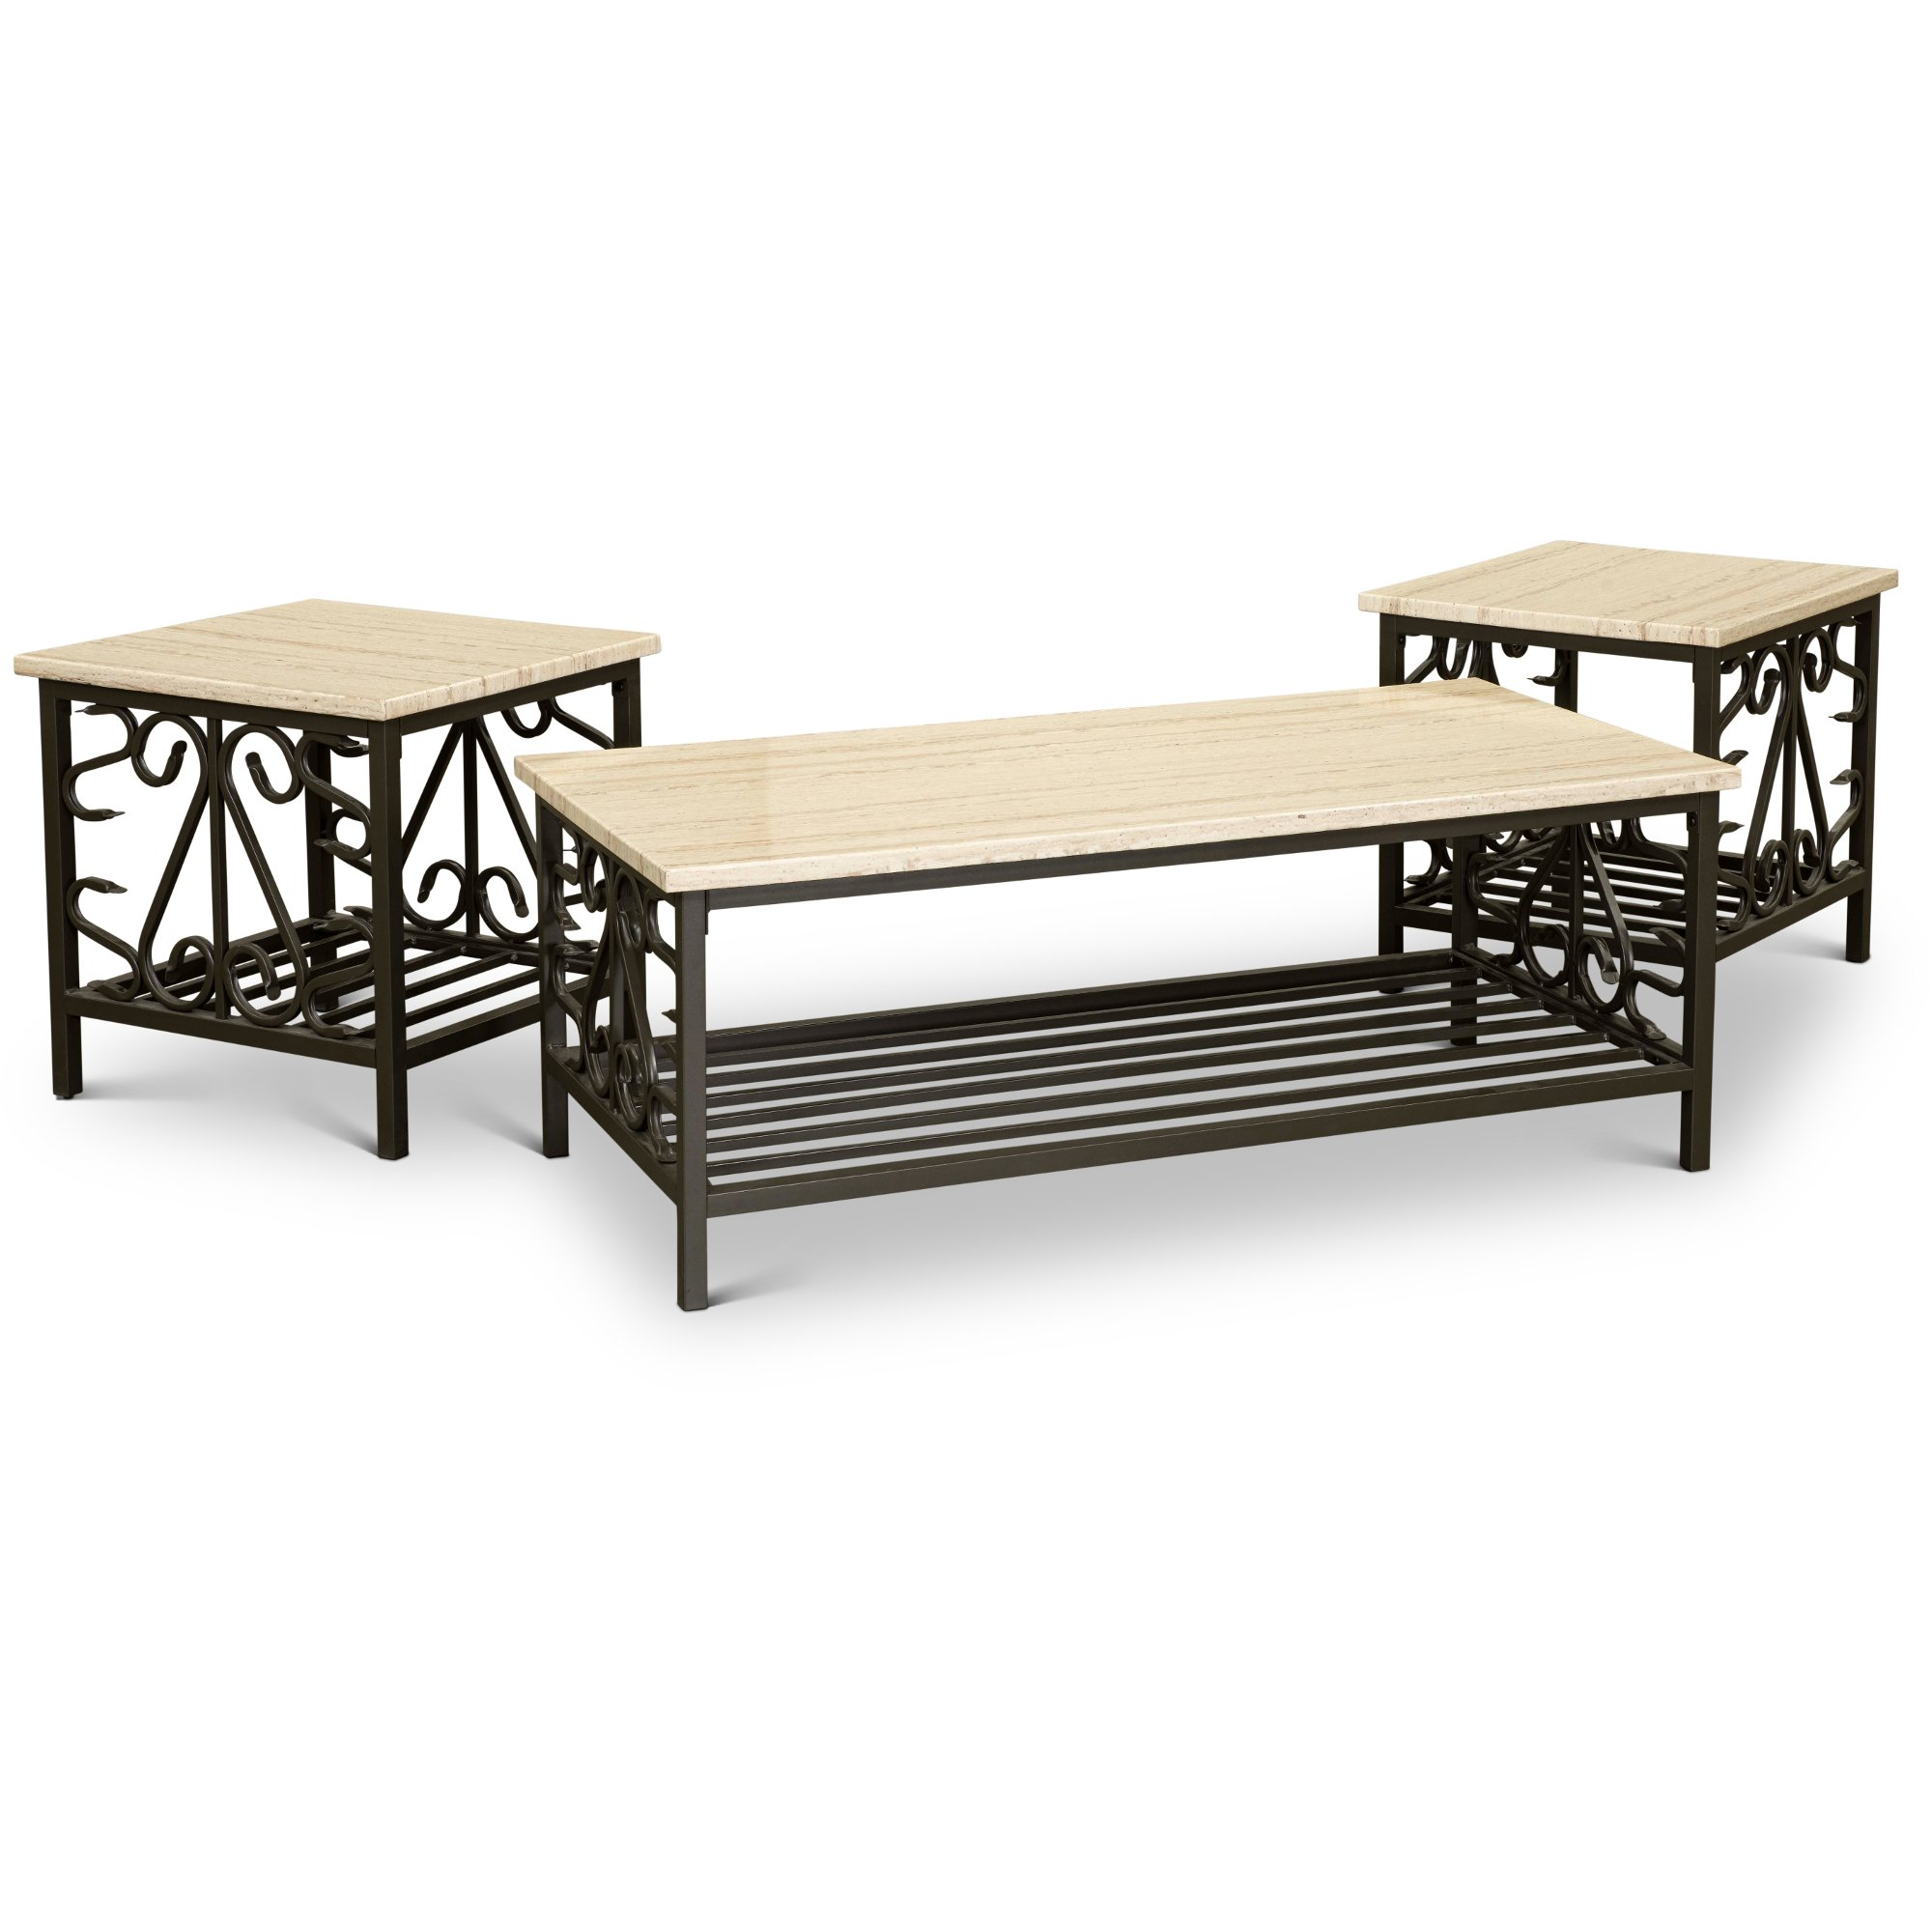 Marble top 3 piece coffee table set living room table for 3 piece living room table sets